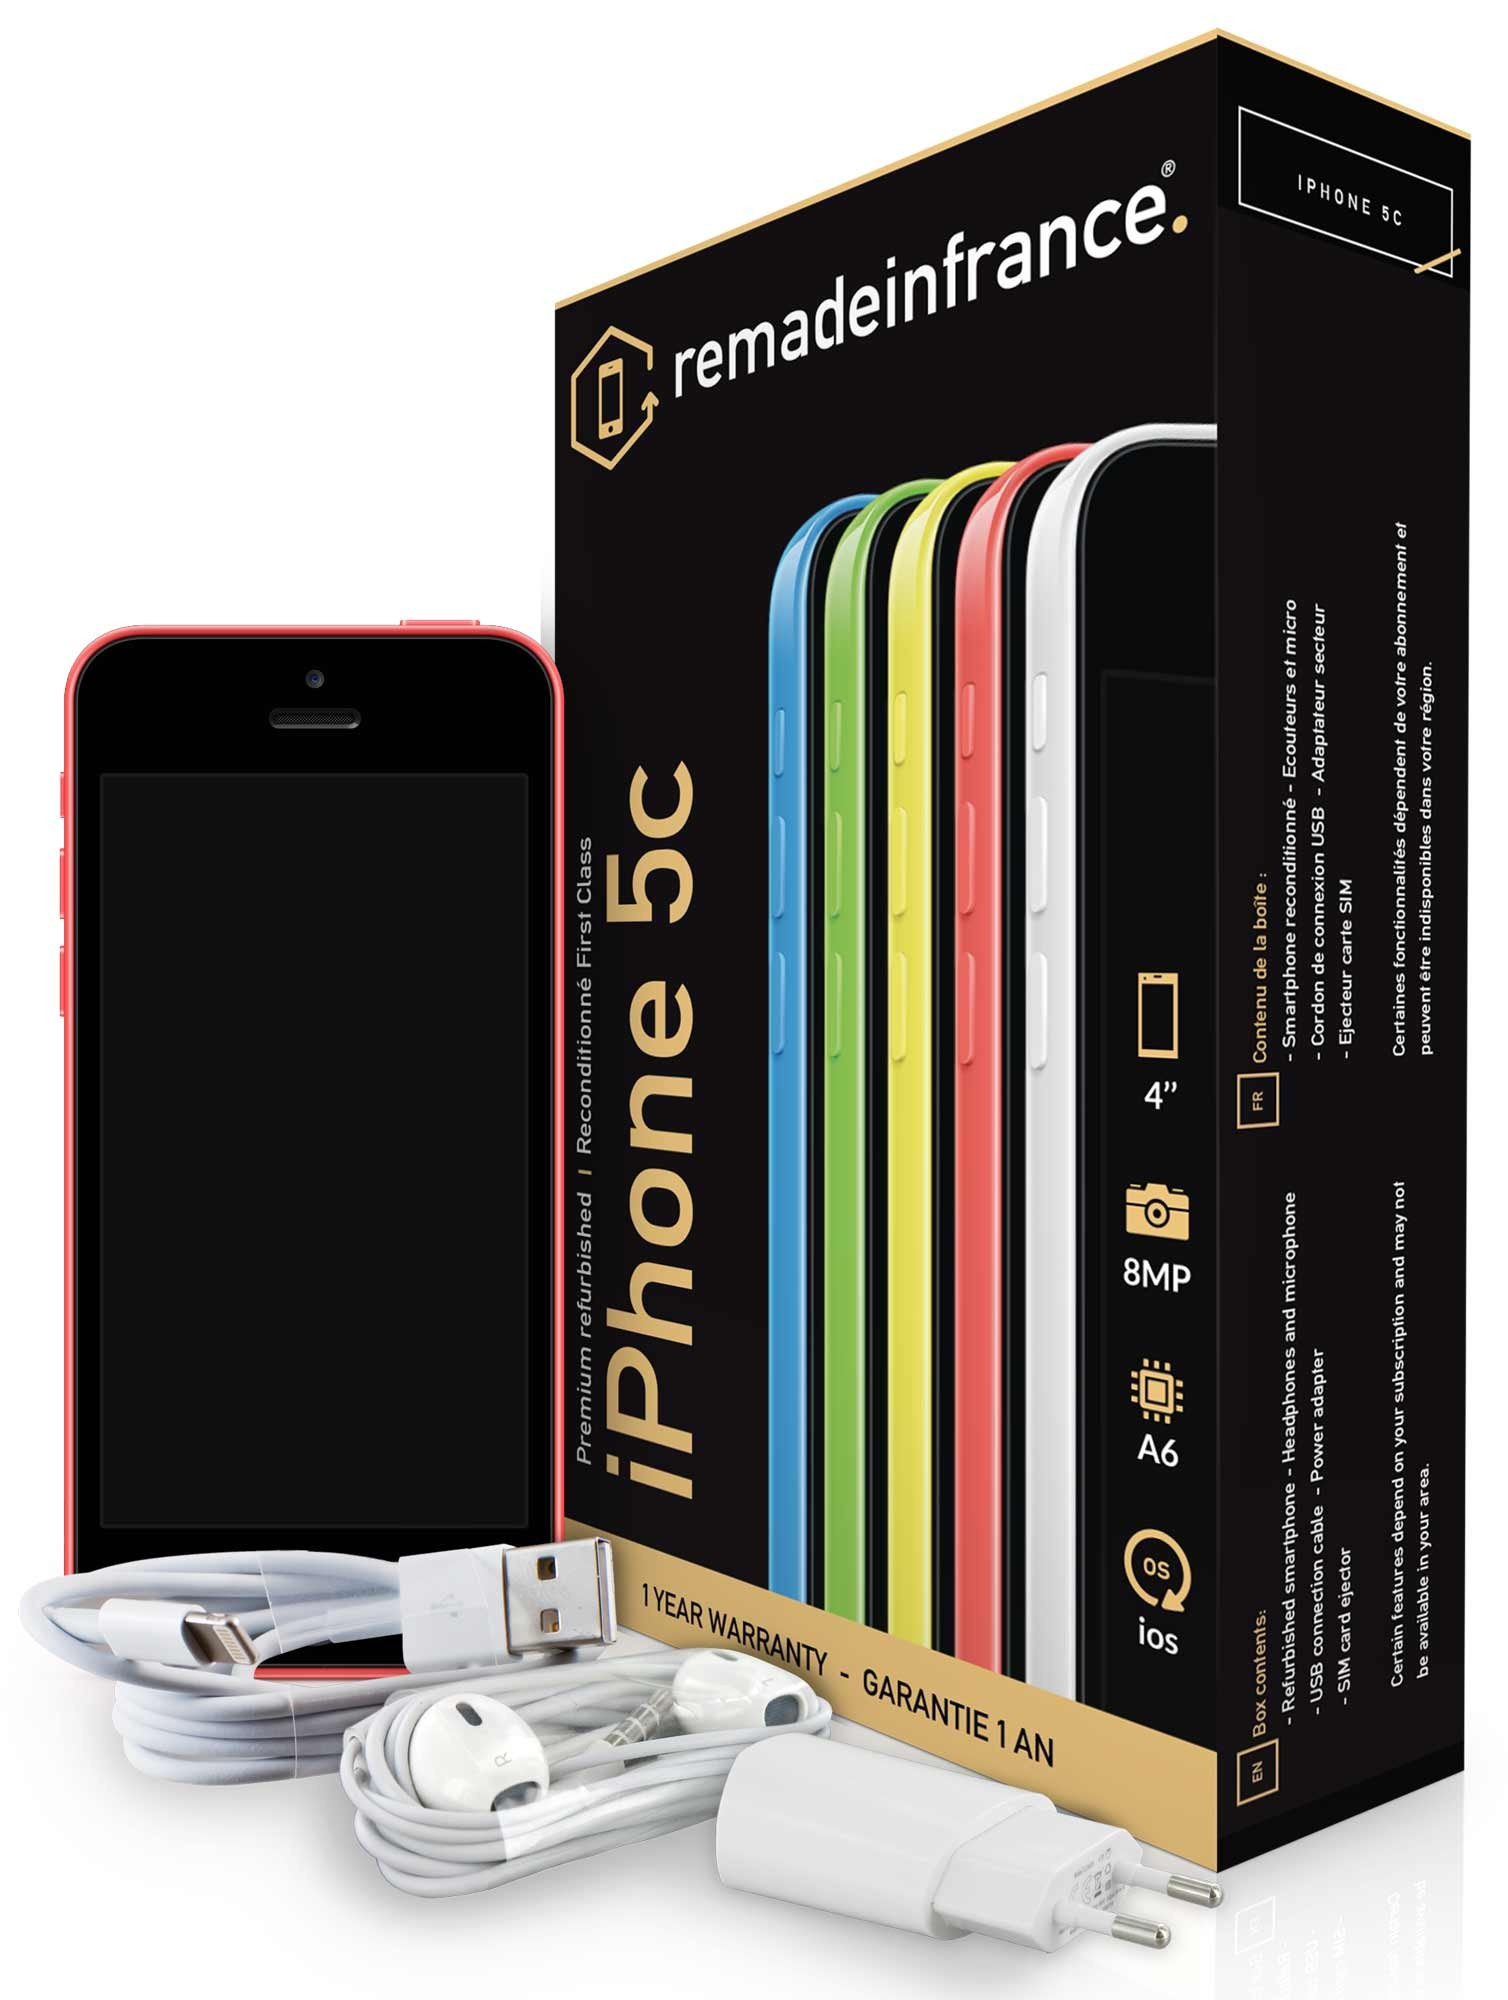 REMADEINFRANCE - iPhone 5C - 16 Go - Rose - Reconditionné (2327 L 1/R)